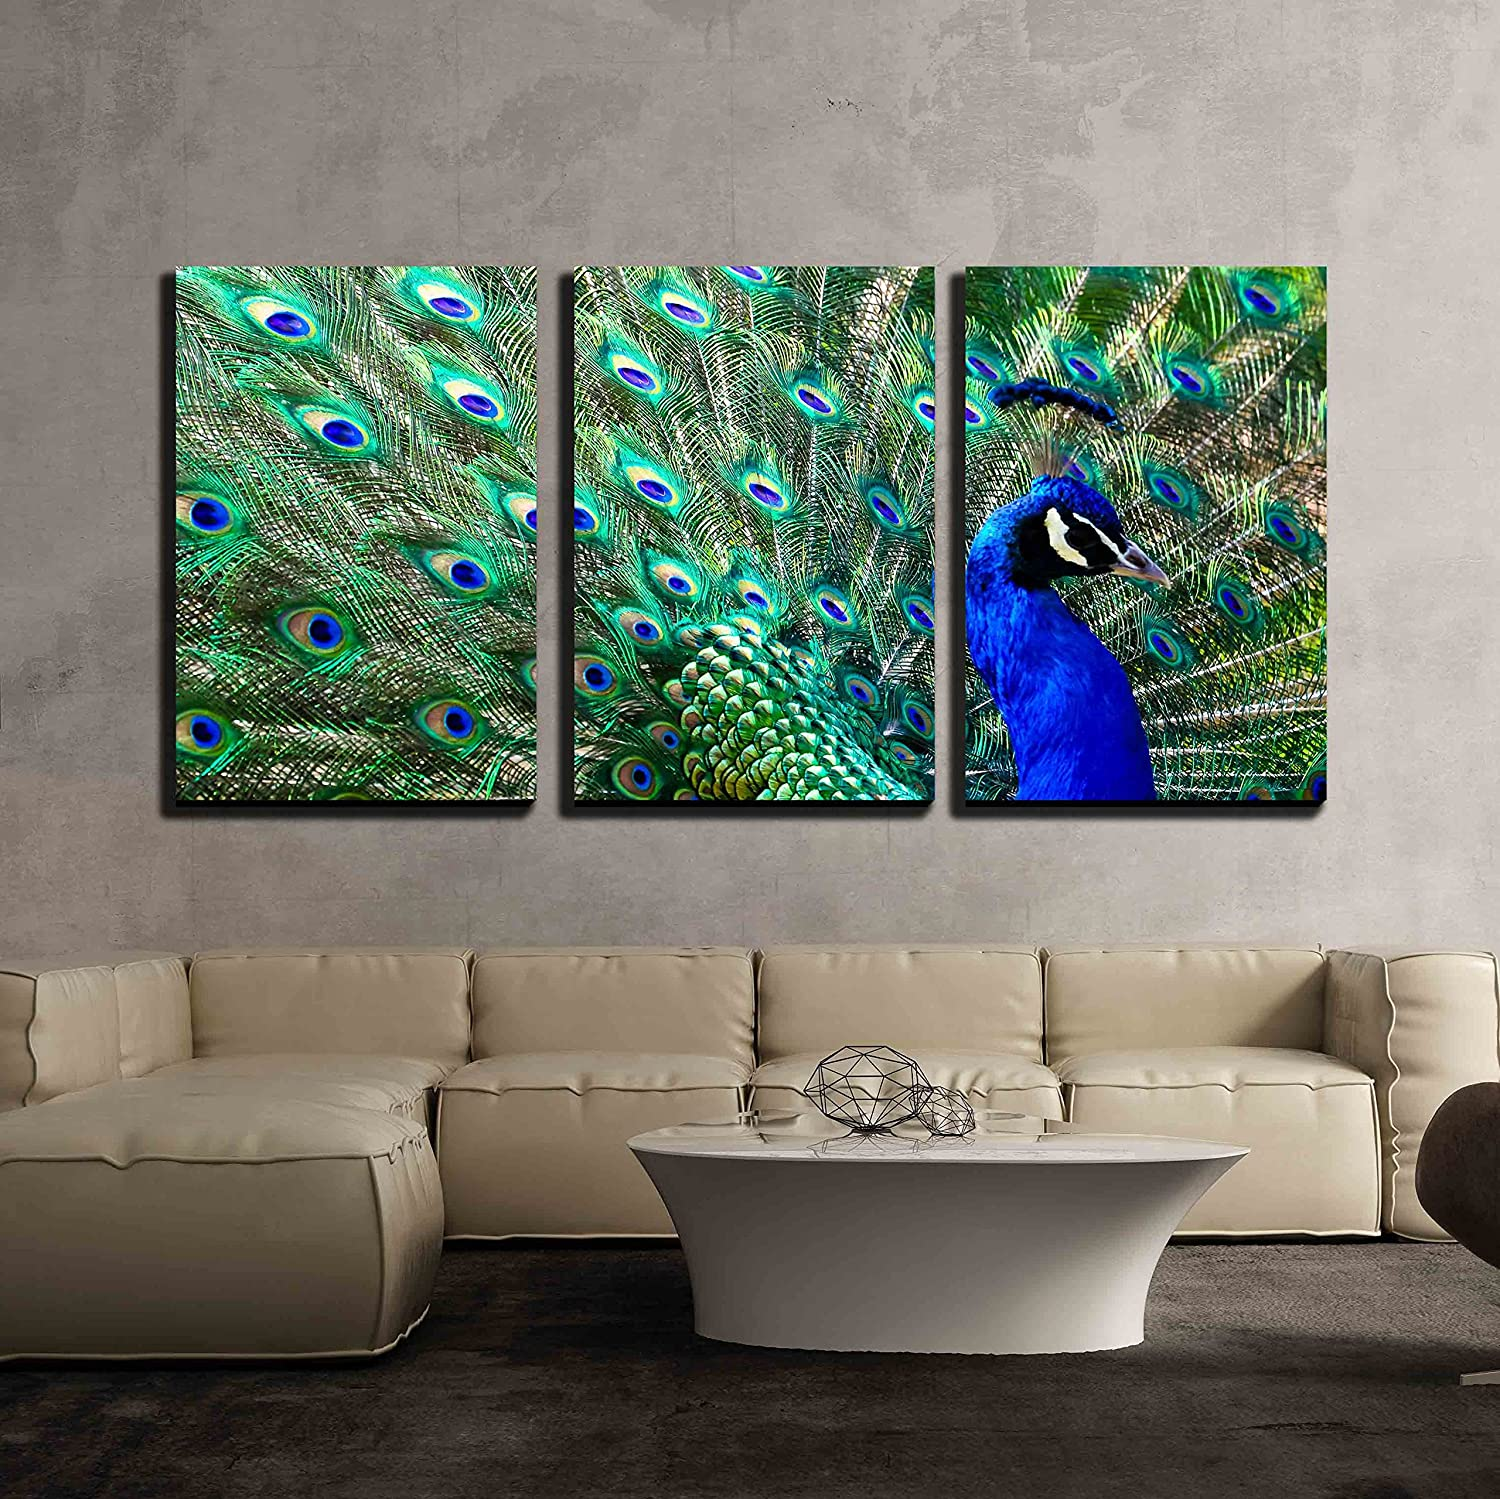 Wall26 - 3 Piece Canvas Wall Art - Male Peacock Displaying His colorful Feathers - Modern Home Decor Stretched and Framed Ready to Hang - 16 x24 x3 Panels